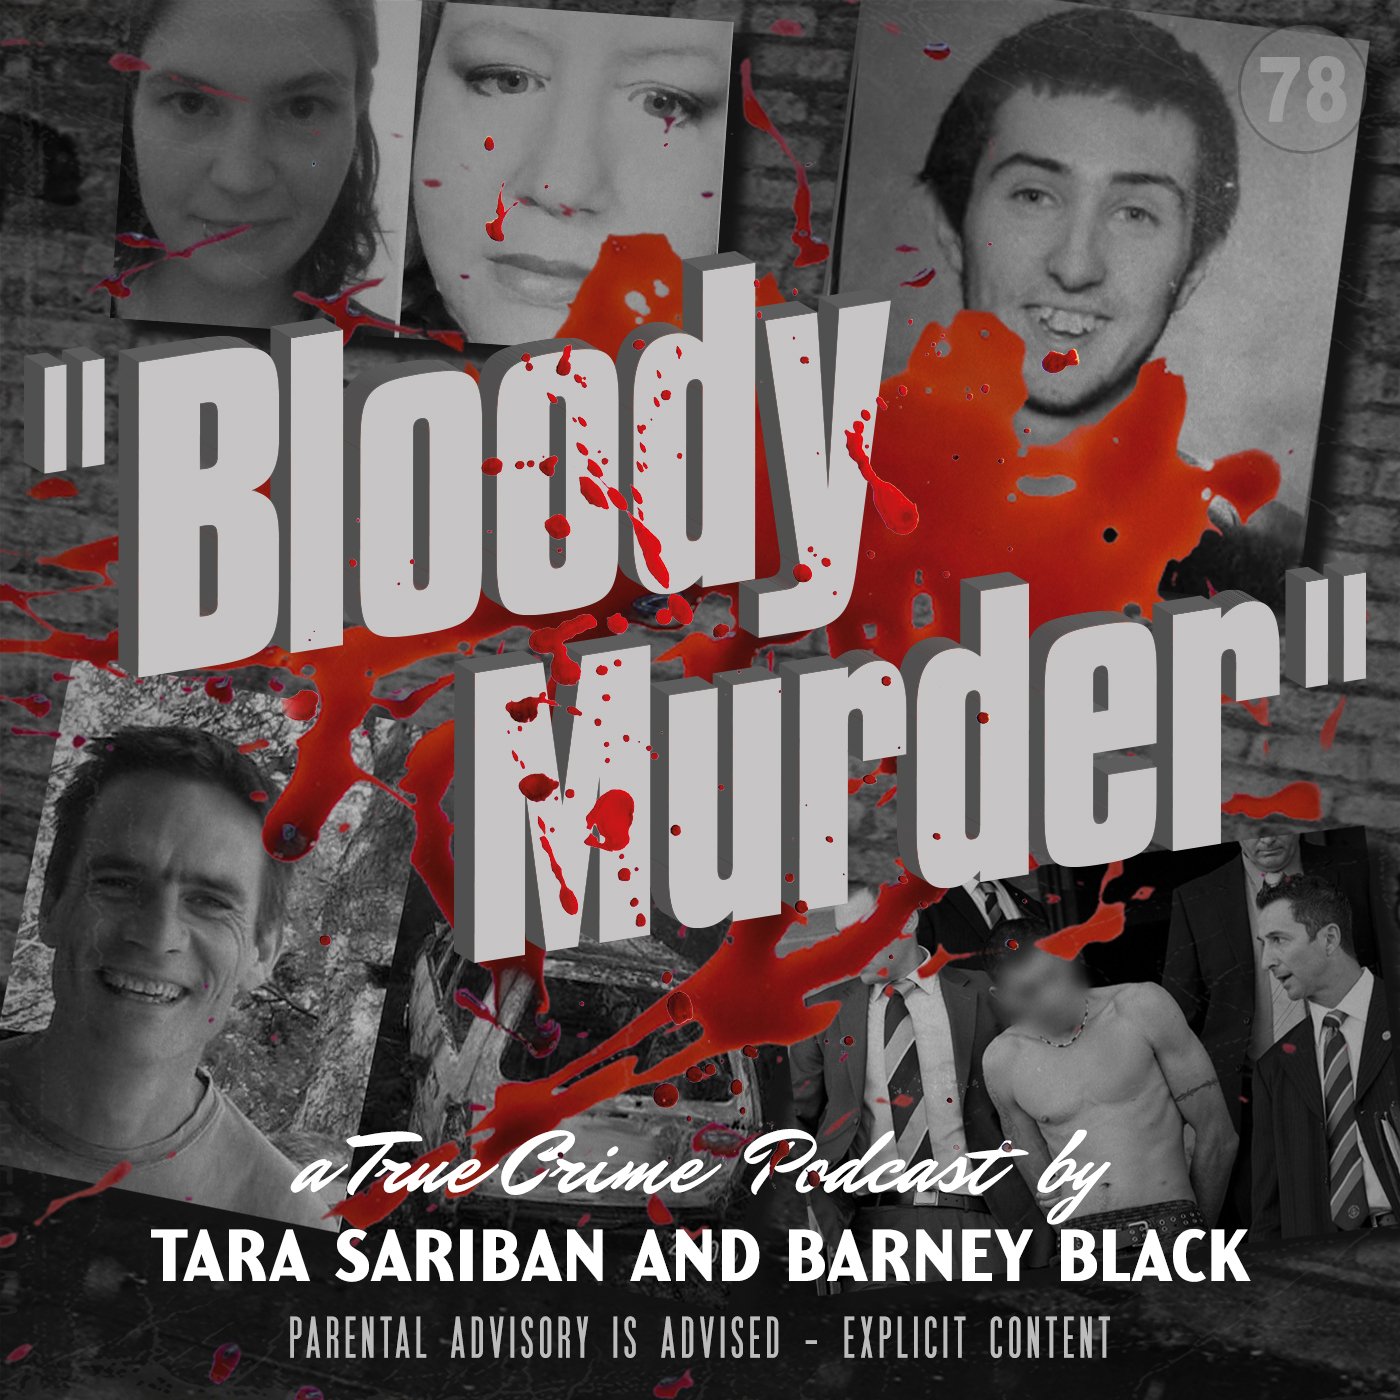 78 - The Murders of Aaron Pajich and Matthew Digby